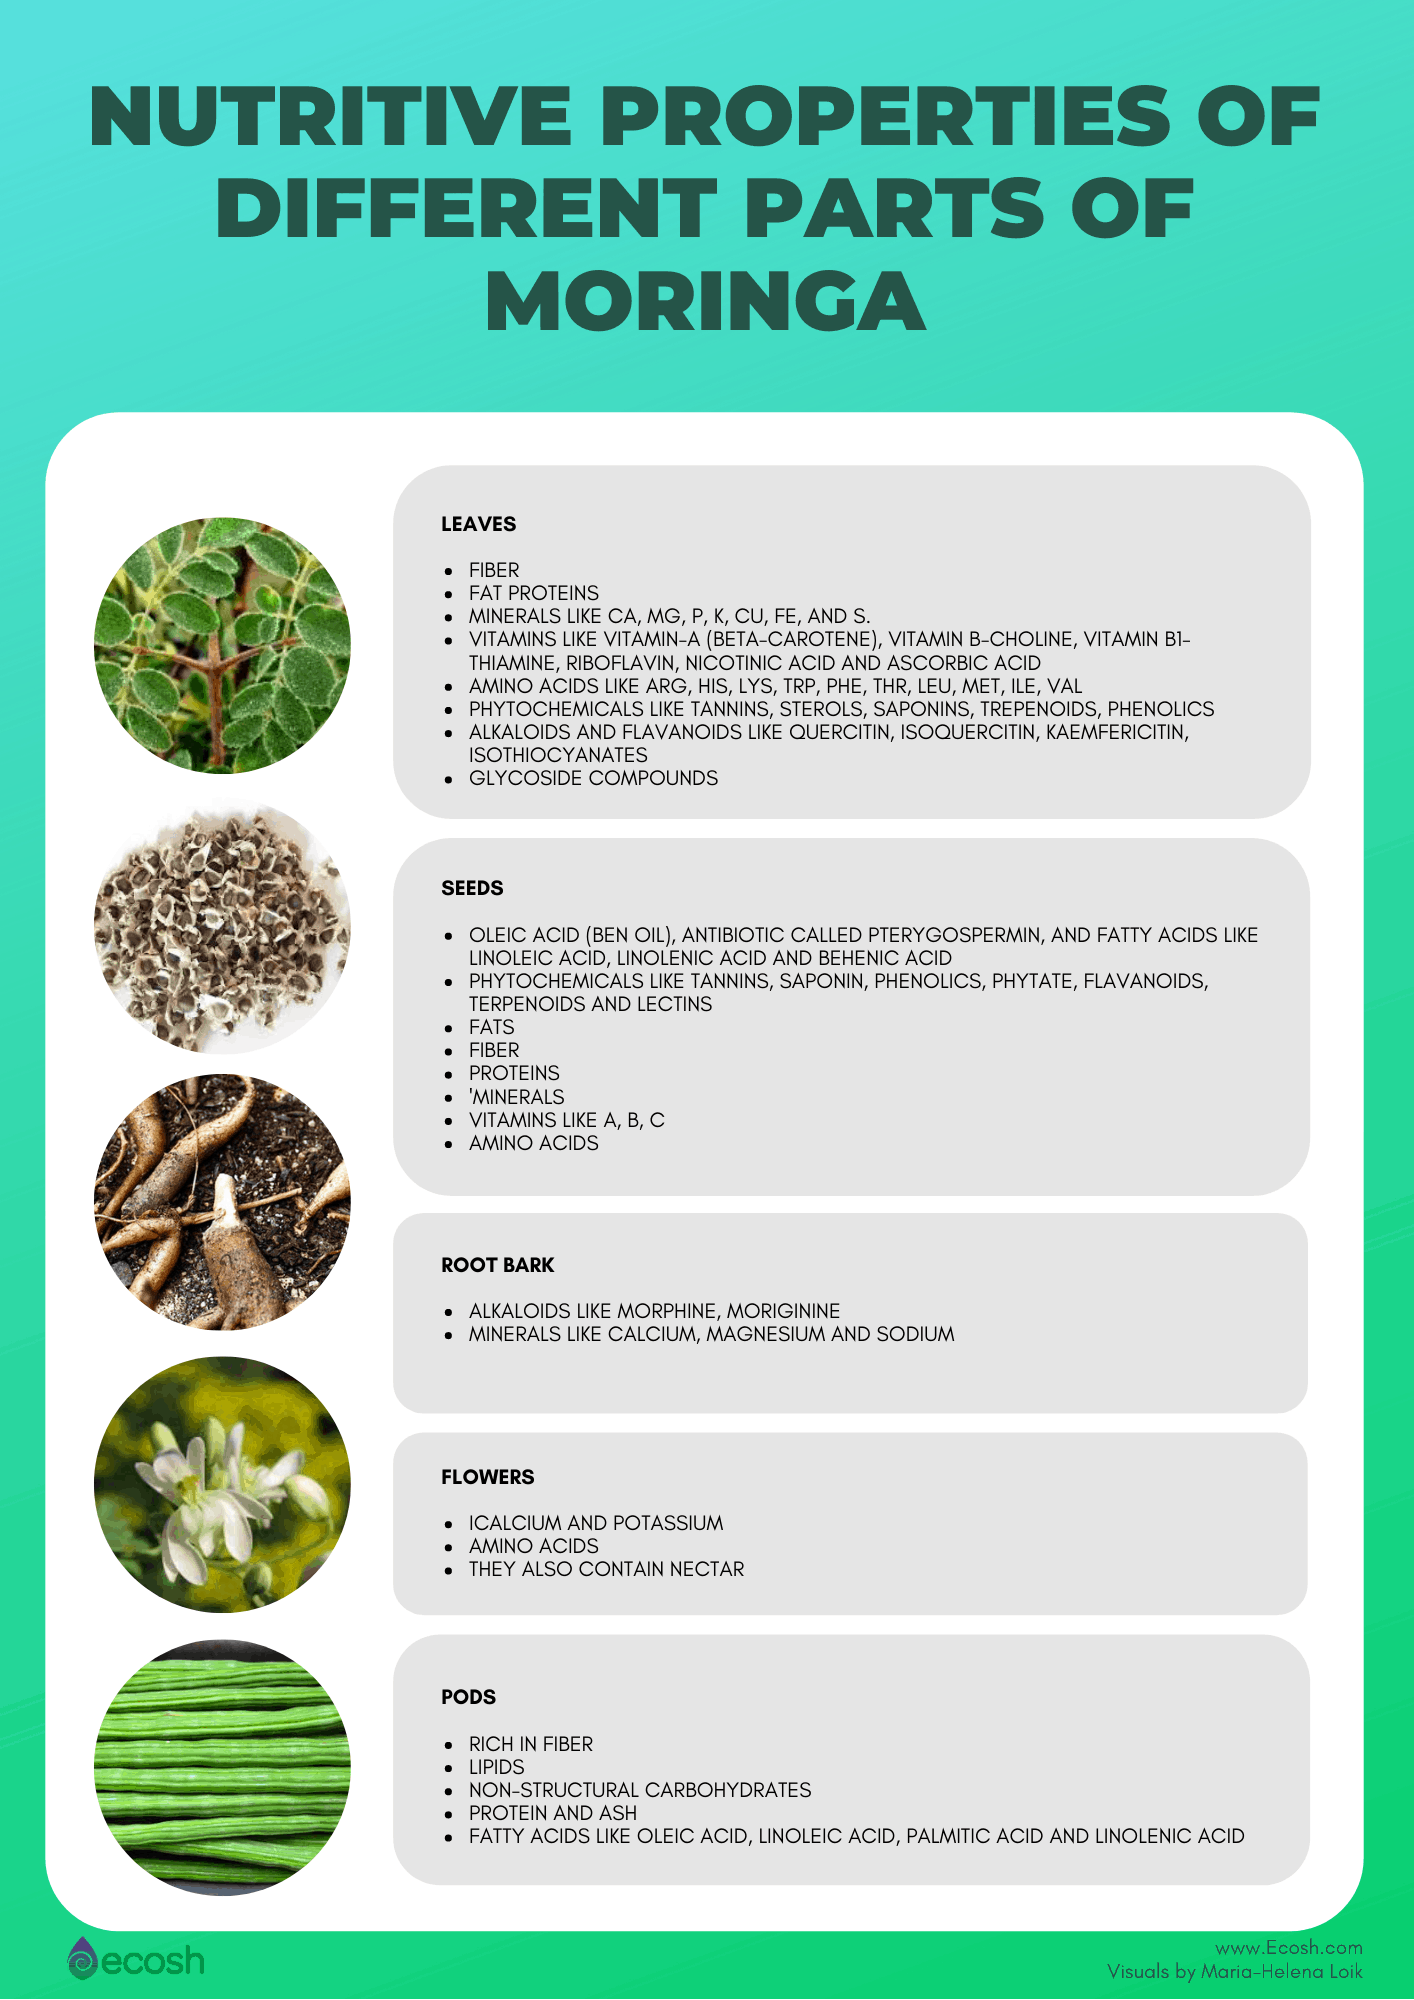 Ecosh_The_Nutrient_Content_Of_Different_Parts_Of_Moringa_Oleifera_Leaves_Moringa_Nutrients_Moringa_Roots_Moringa_Seeds_Moringa_Pods_Moringa_Flowers